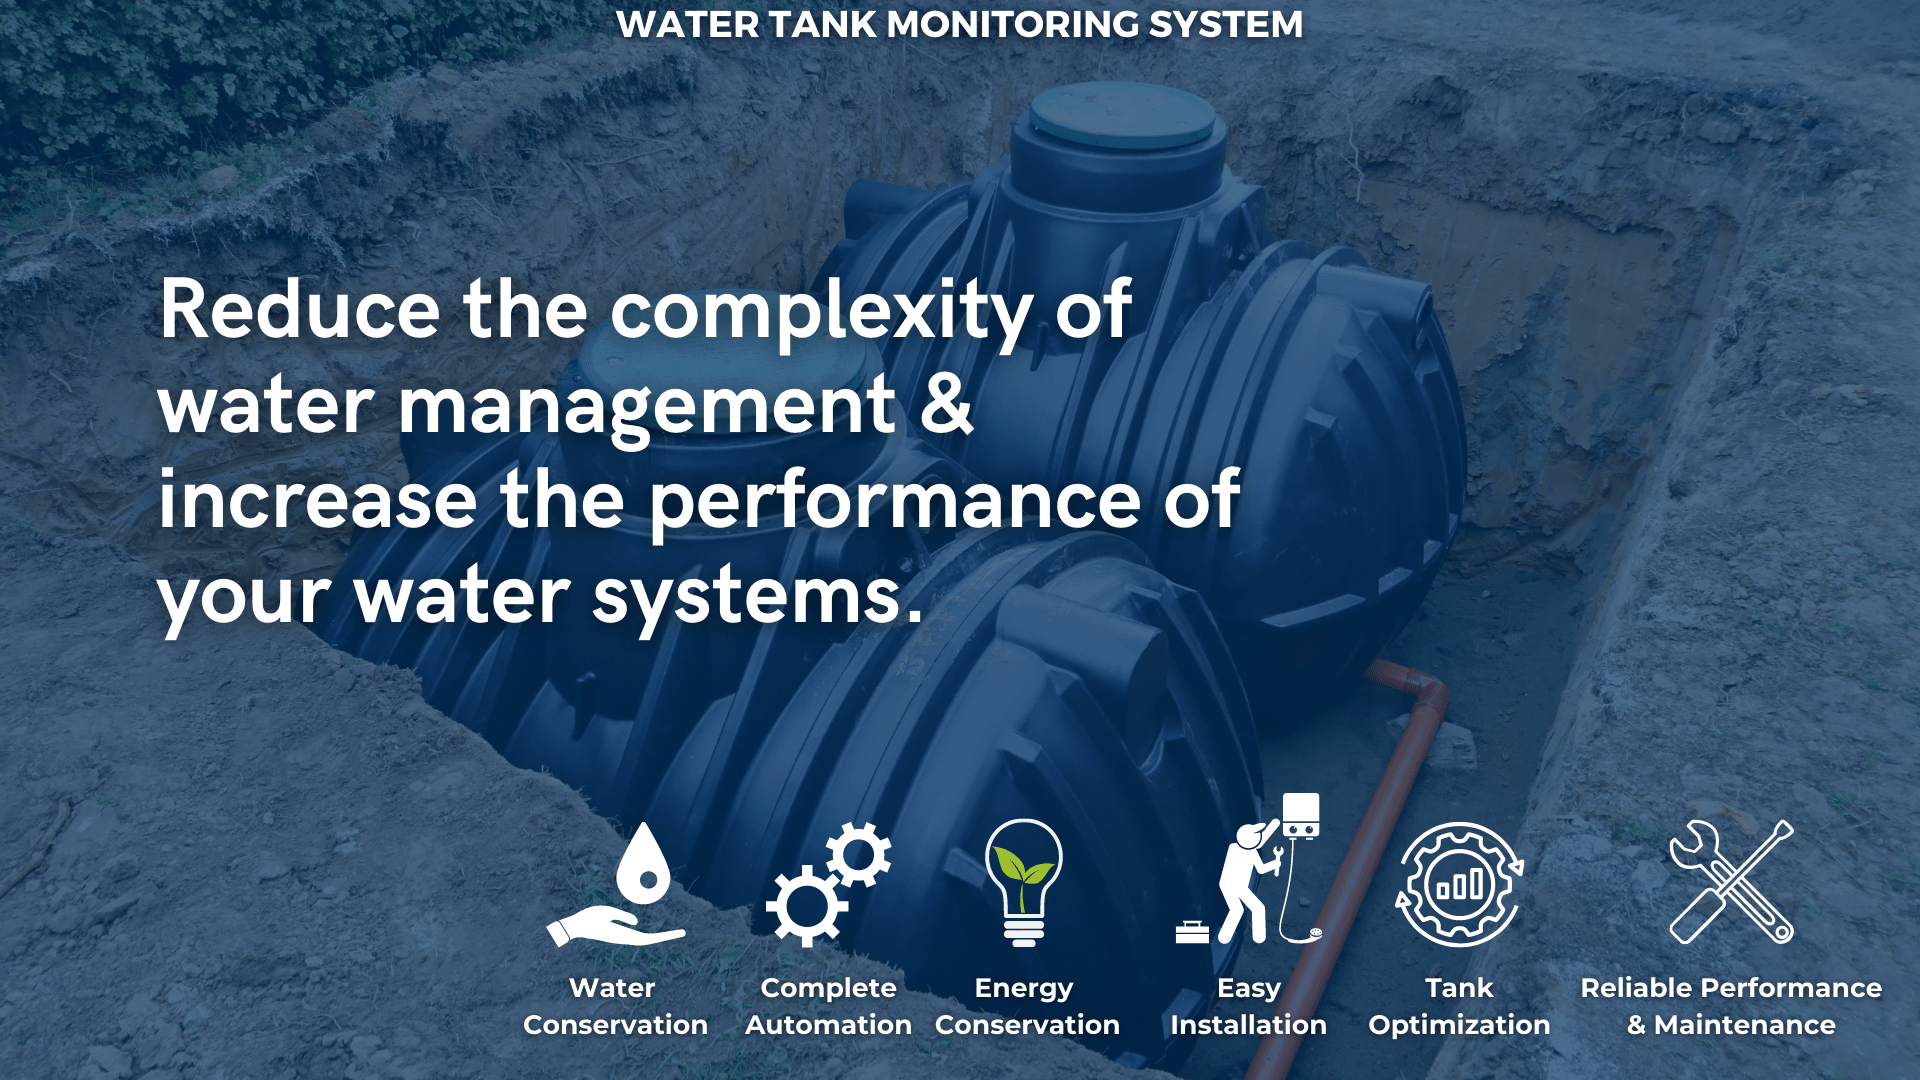 Water Tank Monitoring System 2-min